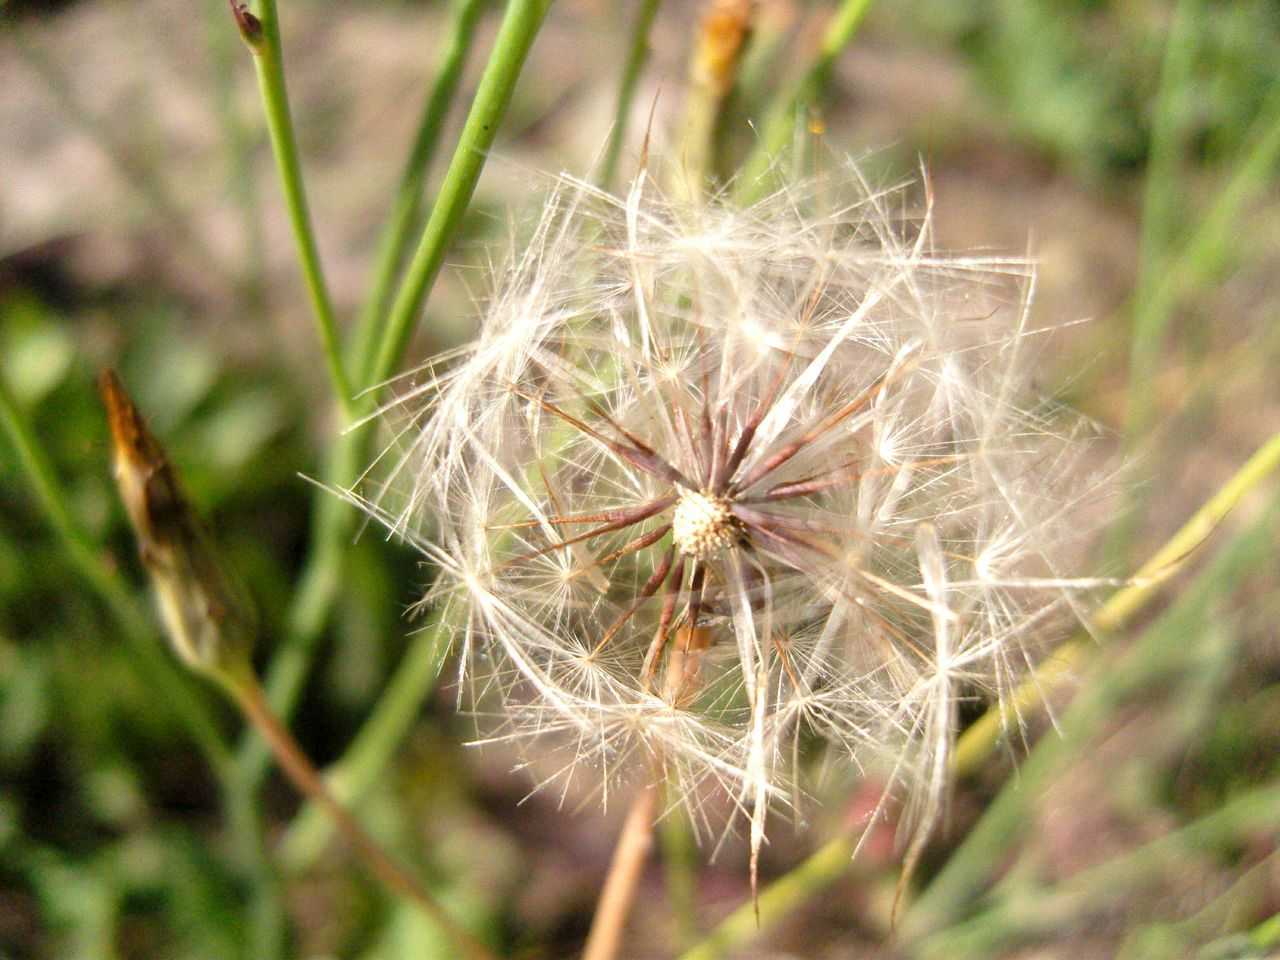 flower, dandelion, nature, growth, fragility, plant, close-up, focus on foreground, no people, wildflower, flower head, day, outdoors, uncultivated, beauty in nature, freshness